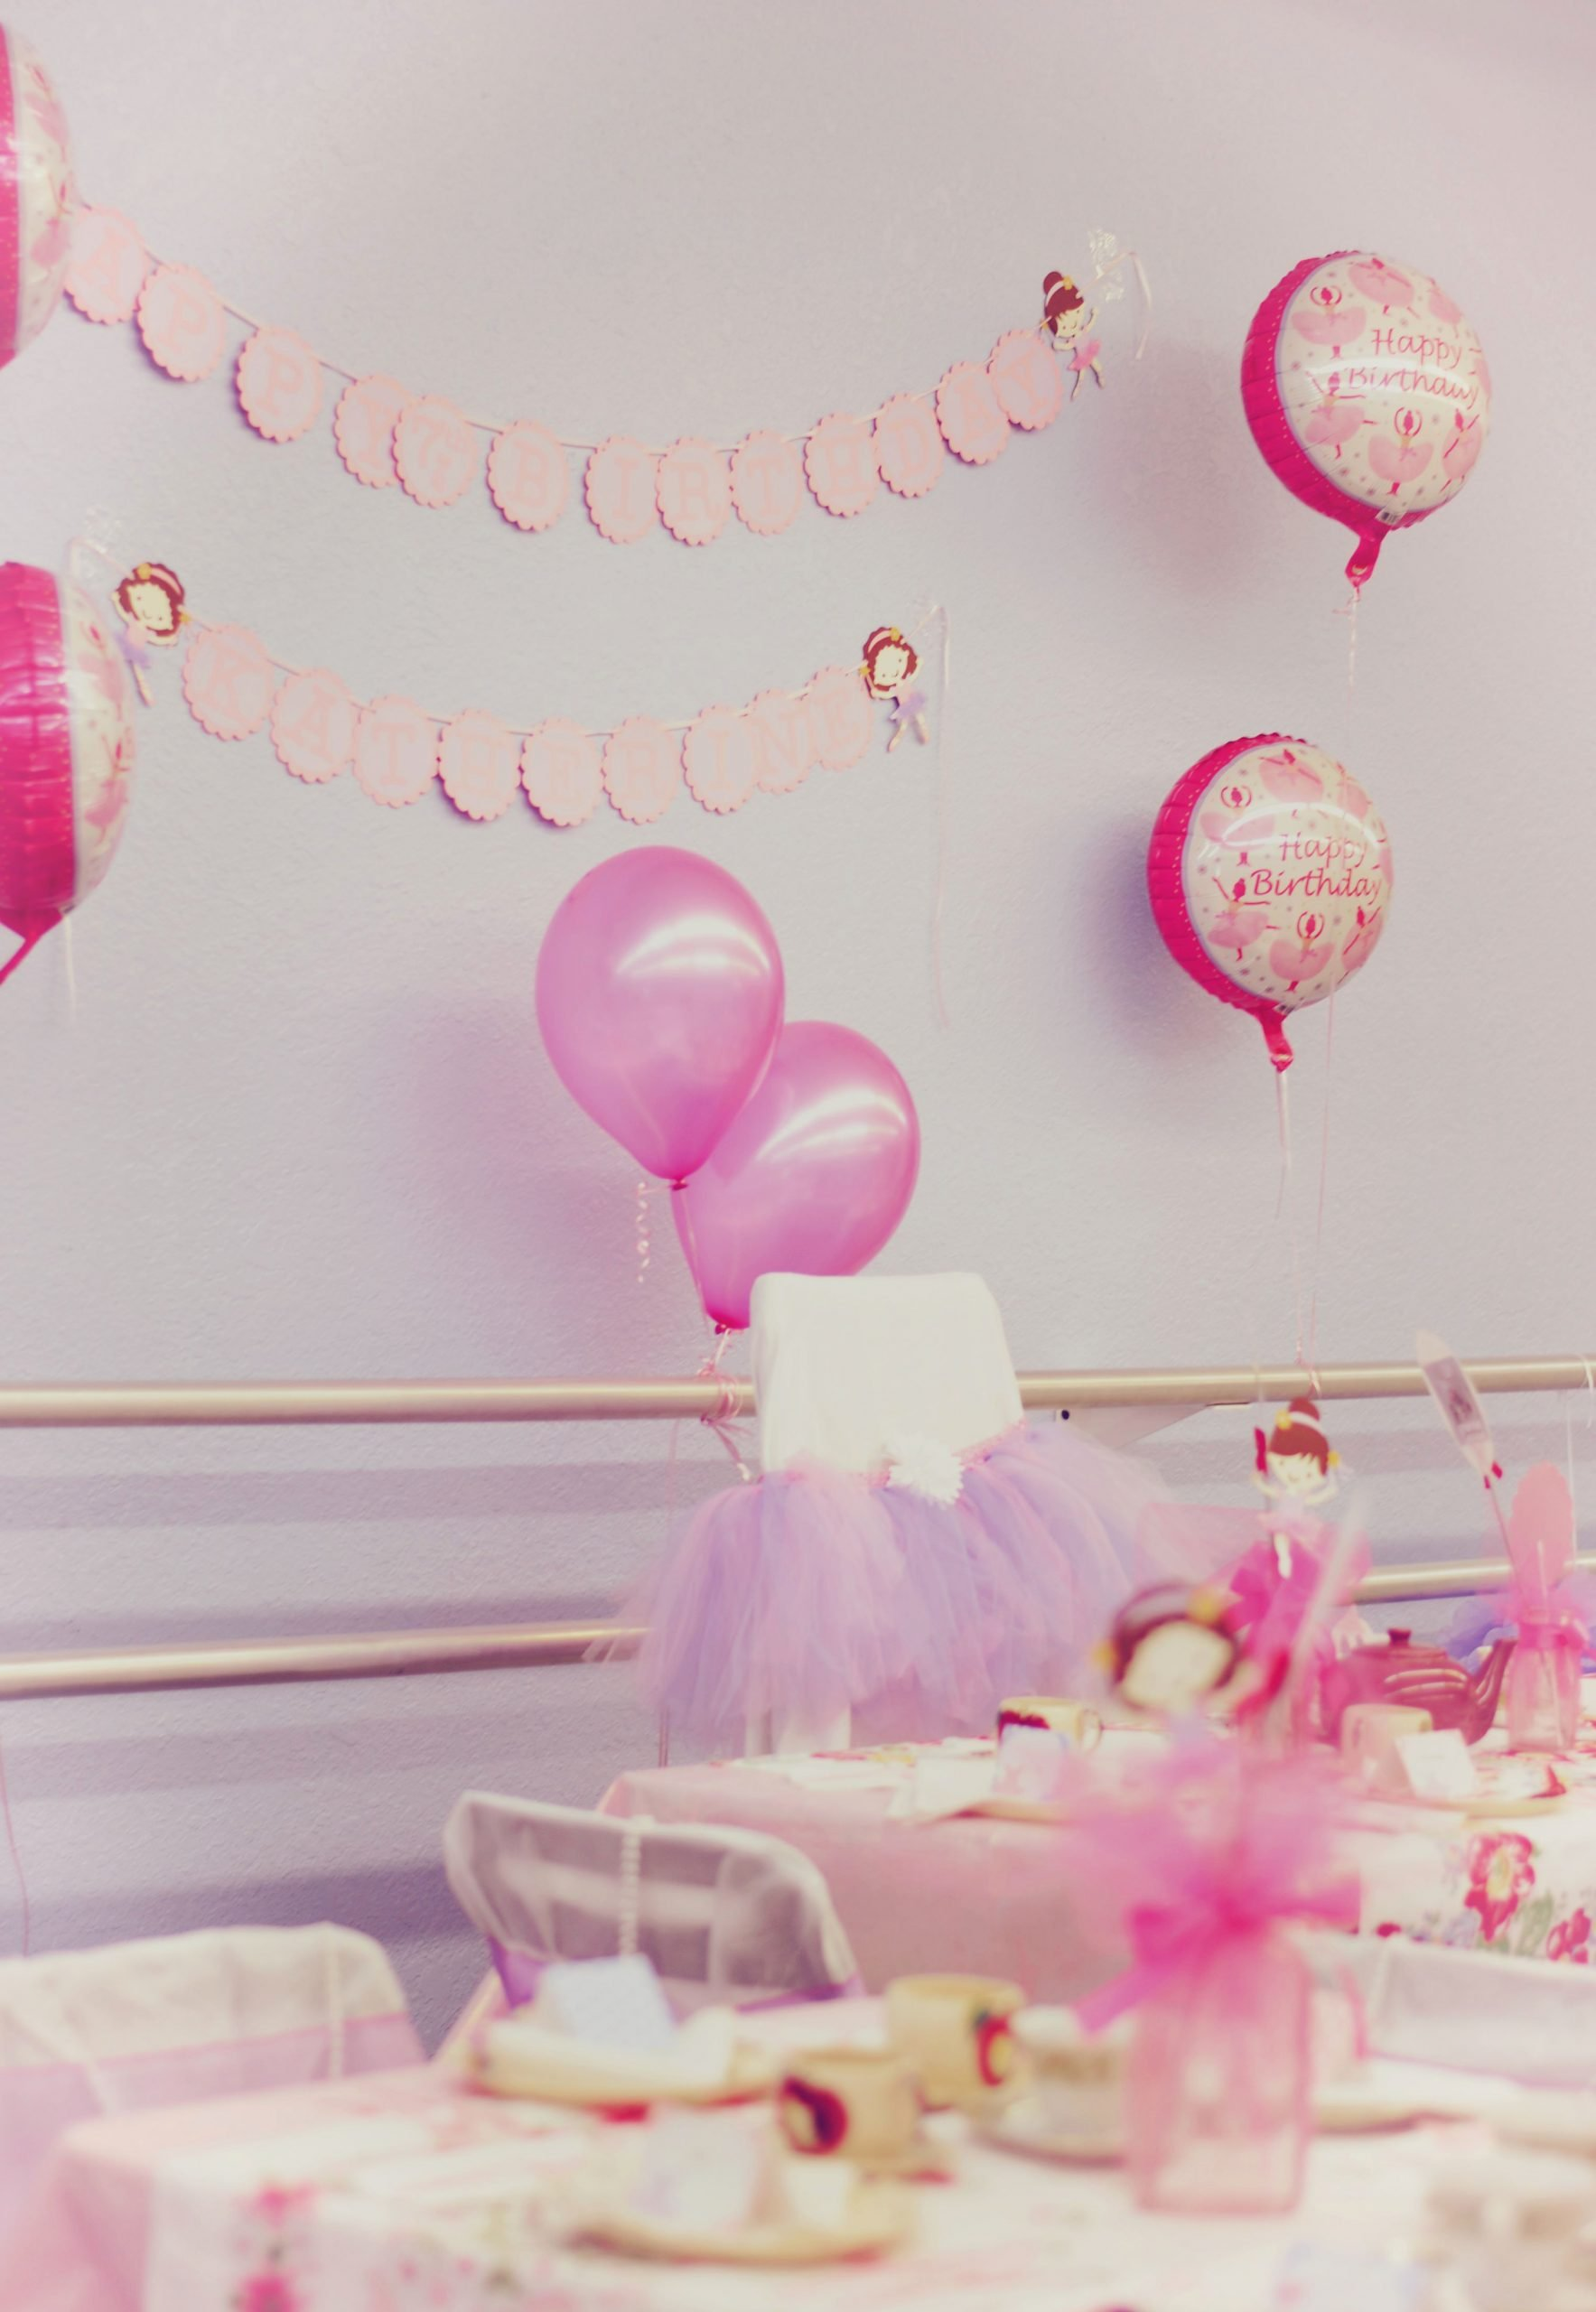 Simple but Elegant Birthday Decoration Ideas Fresh Simple but Elegant Balloon Decorations We Love Party